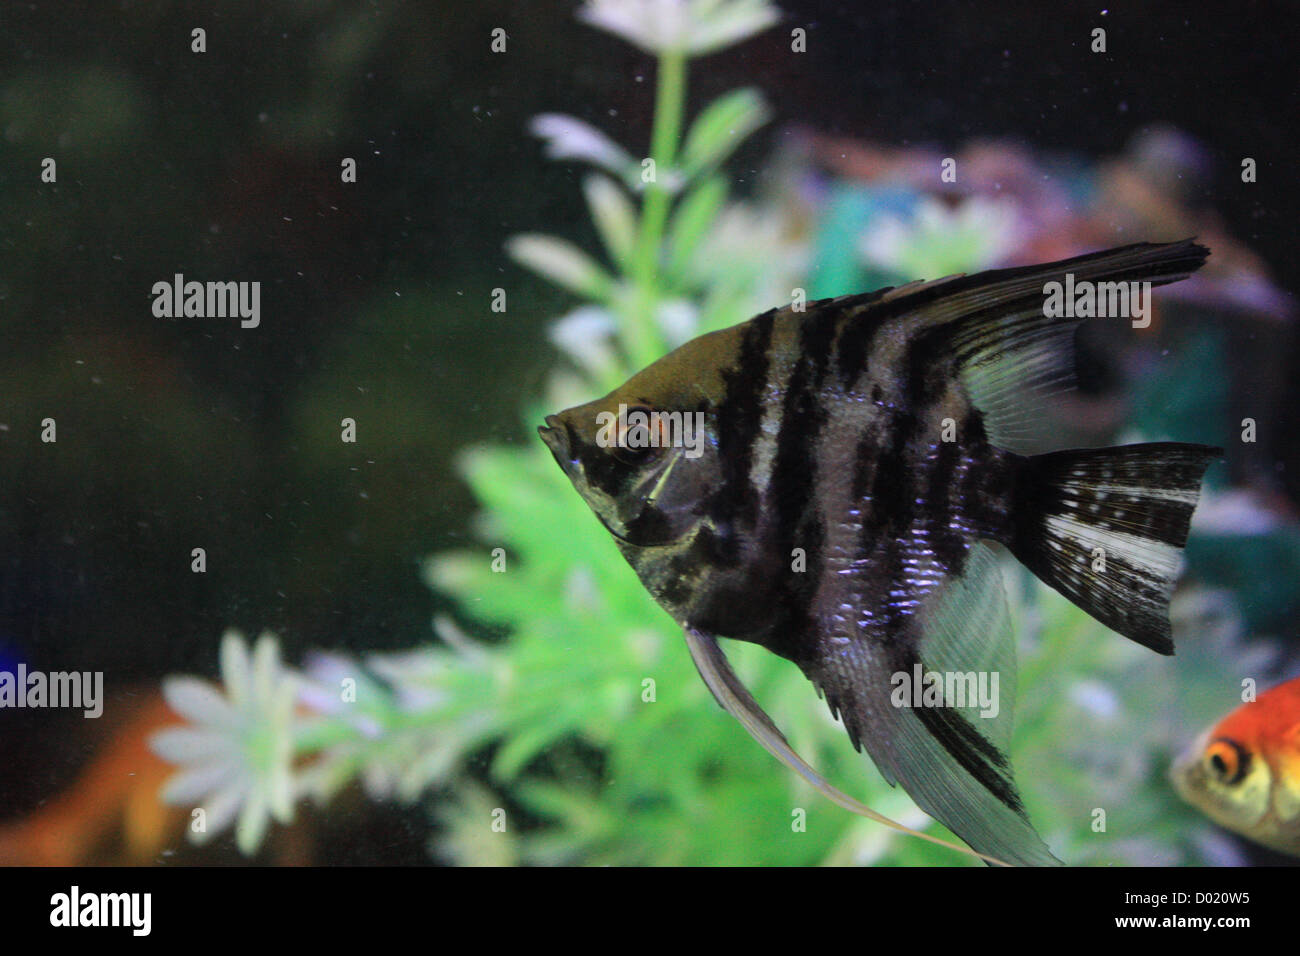 Freshwater aquarium fish games - Stock Photo Freshwater Fish Aquarium Fish Tropical Fish Pictures Of Fish Fish Tanks Fish For Sale All About Fish Salt Water Fish Che